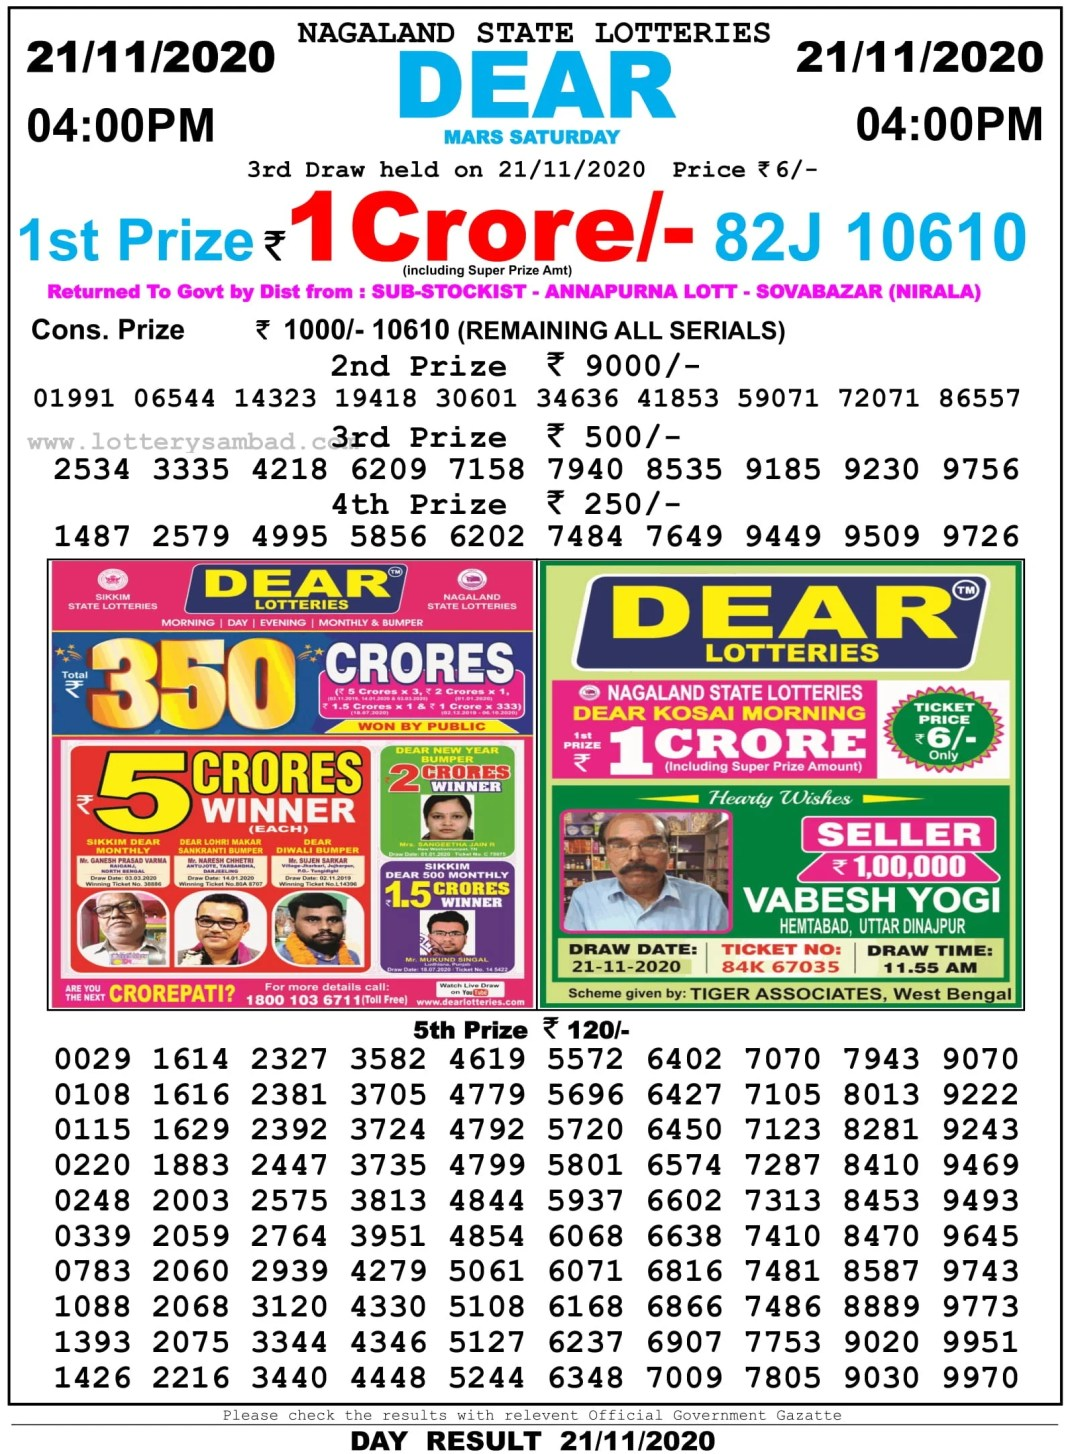 Nagaland State Lottery Result 4 PM 21.11.2020